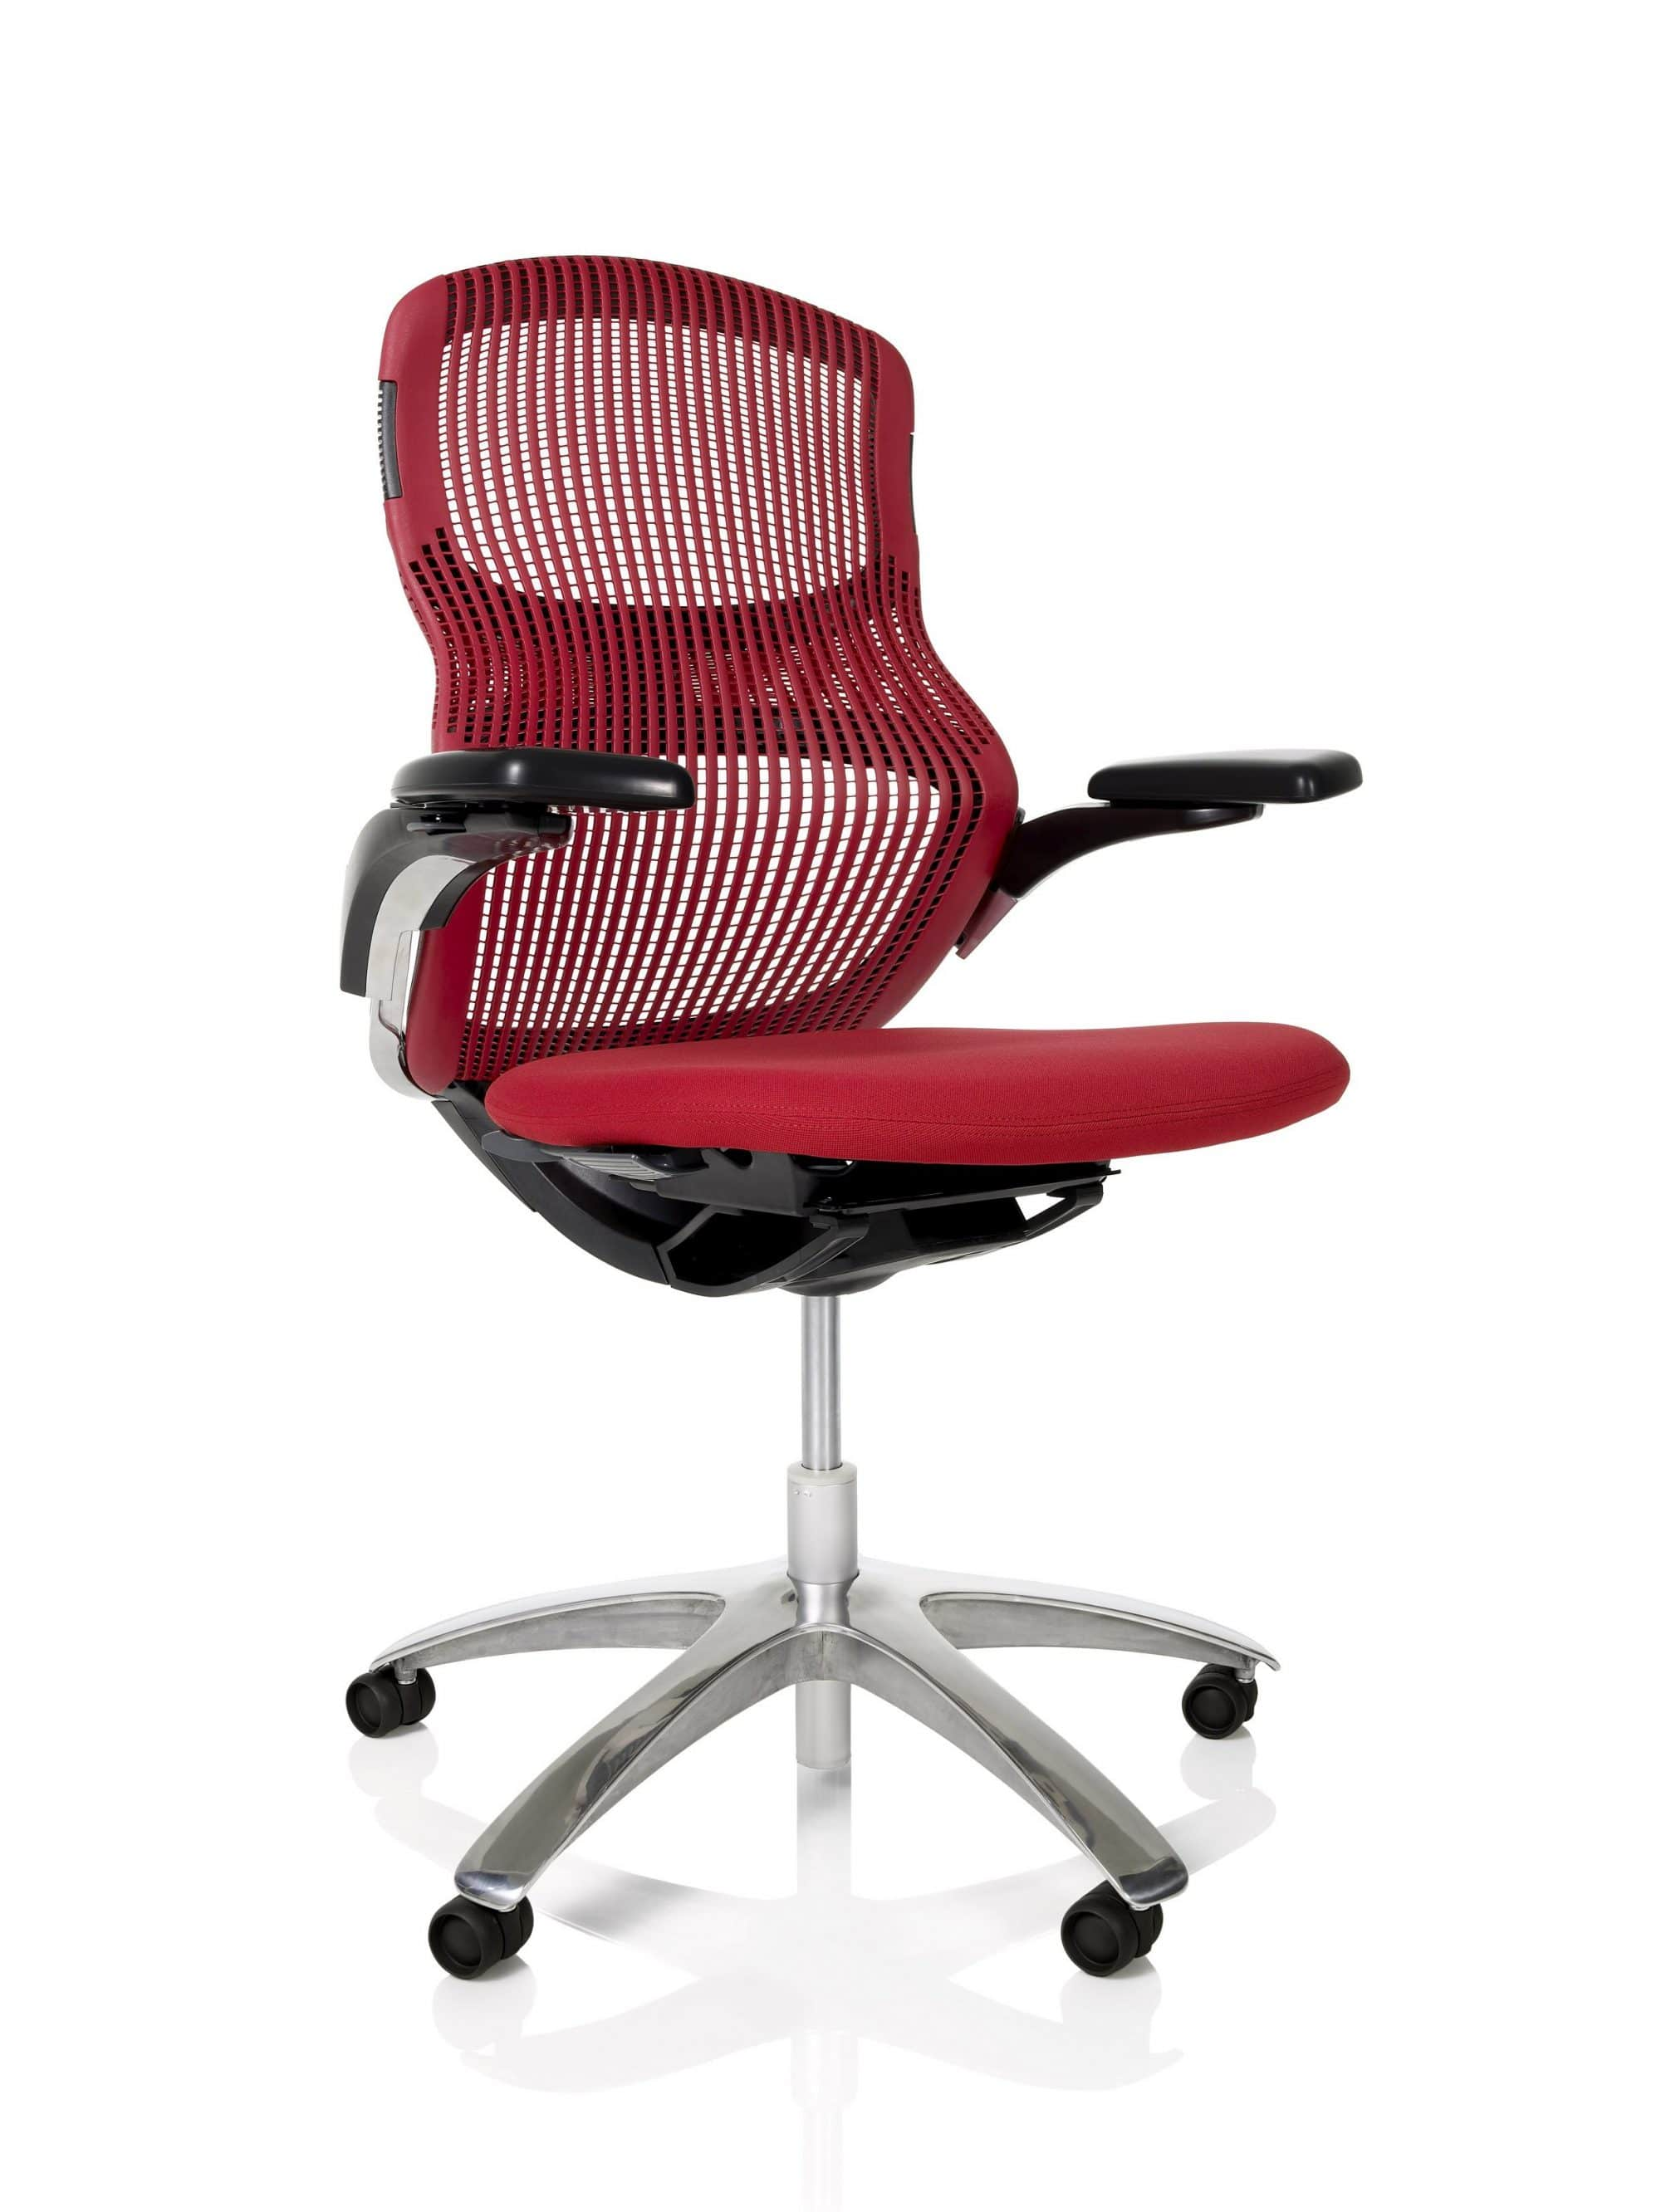 office chairs correctly ergonomic set to how chair posture logic up rh blog